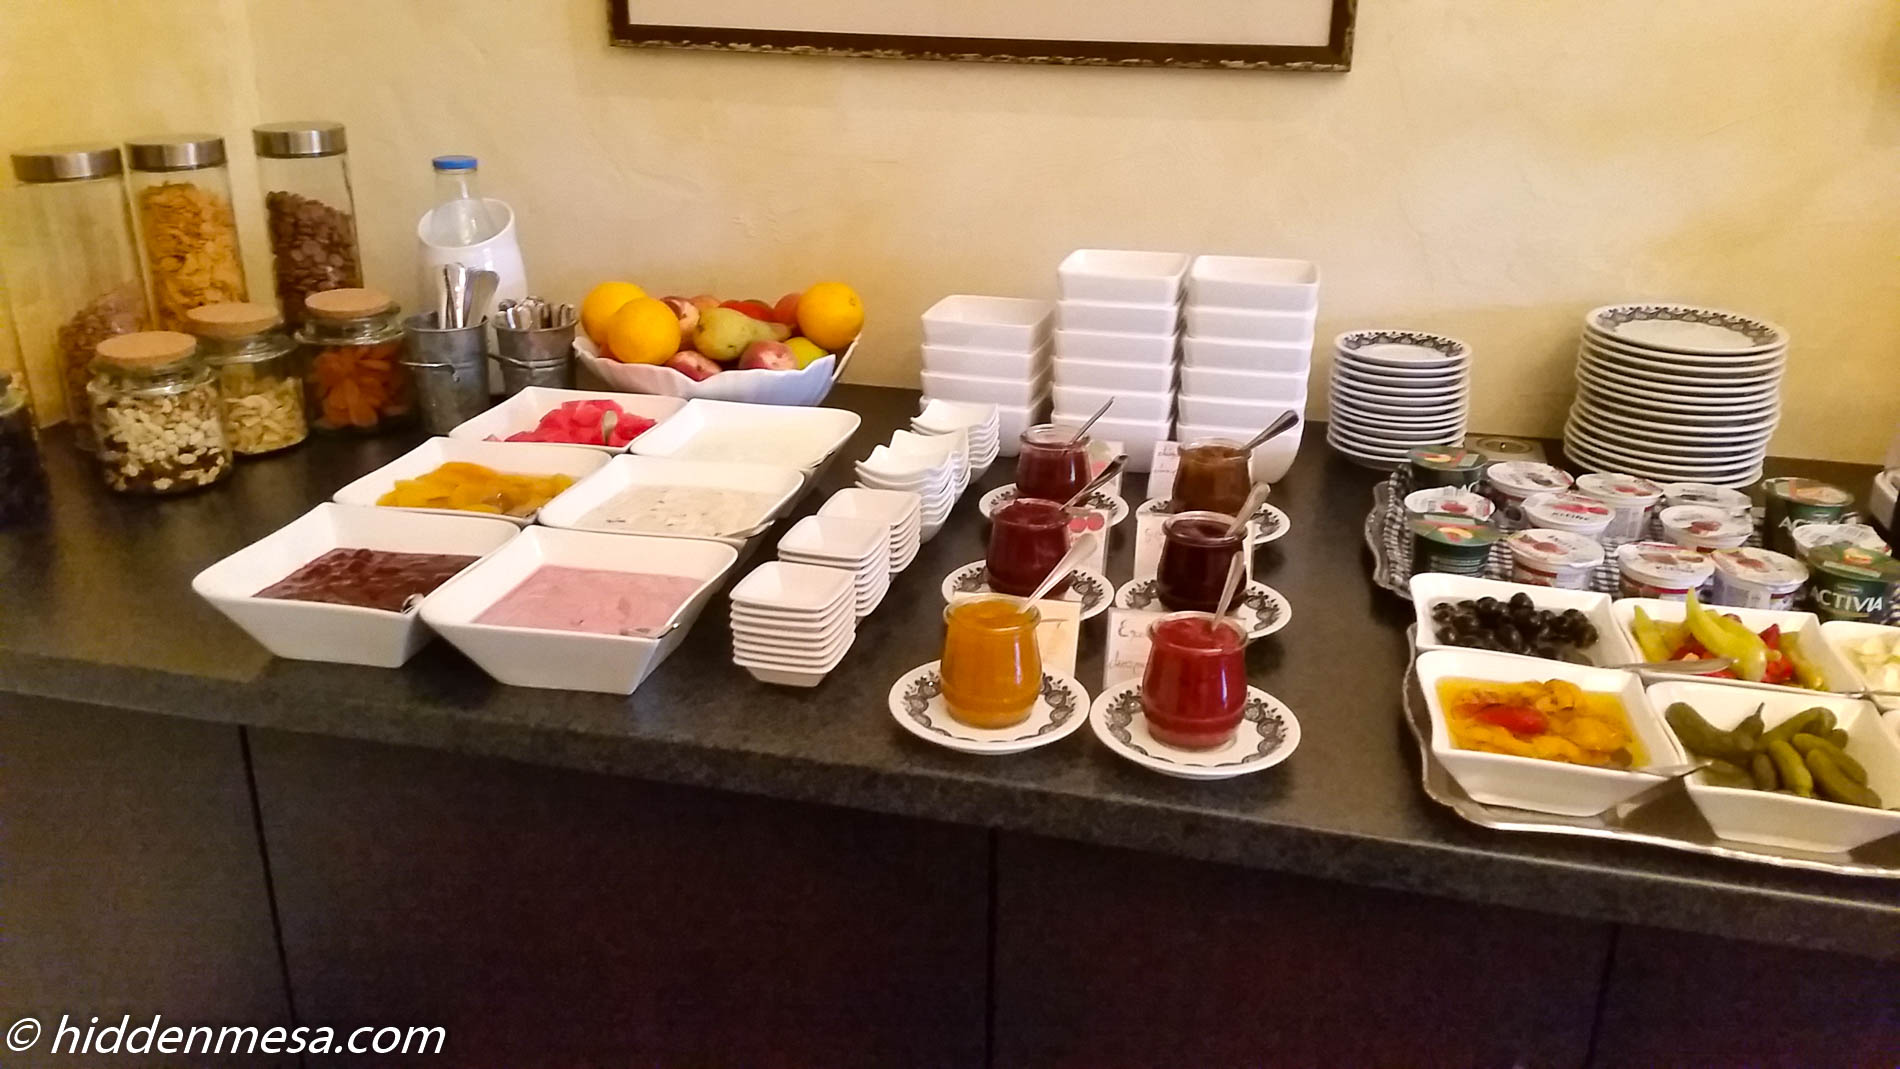 Breakfast Selection at Stumberger's Hotel